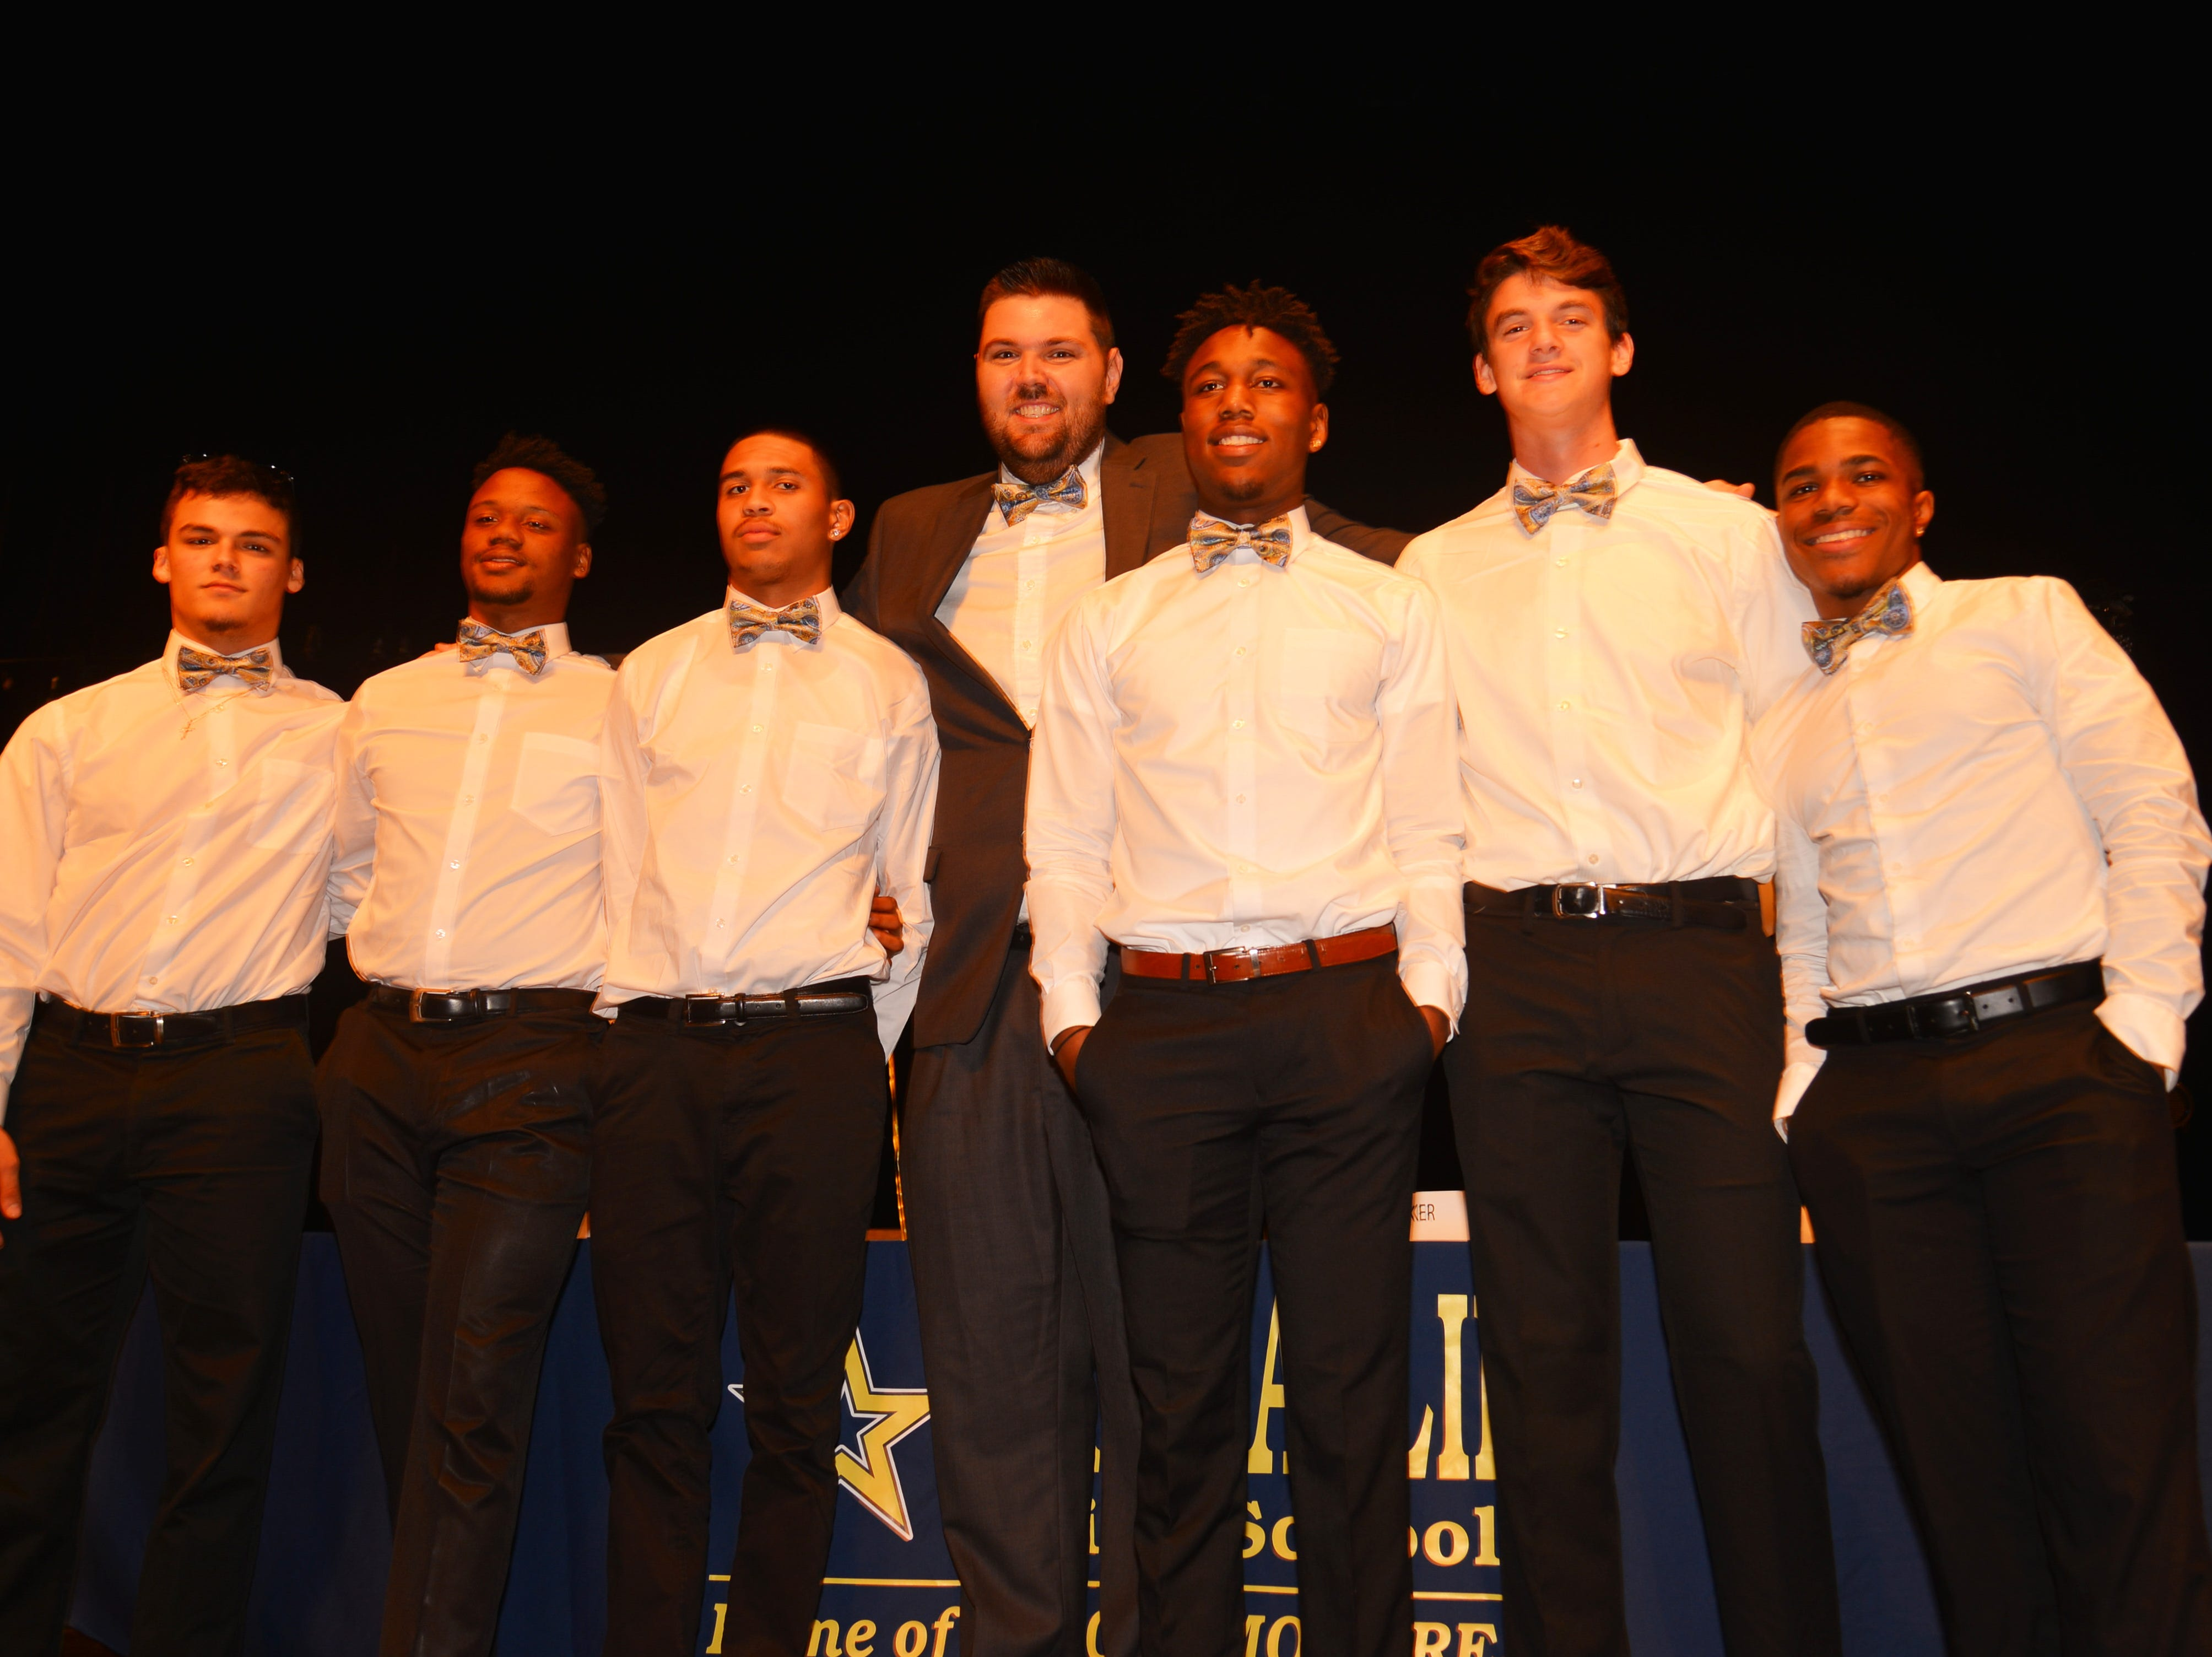 Eau Gallie High School had 11 athletes sign letters of intent on Wednesday. The he six plauyers who signed stand with their head coach Chris Sands.